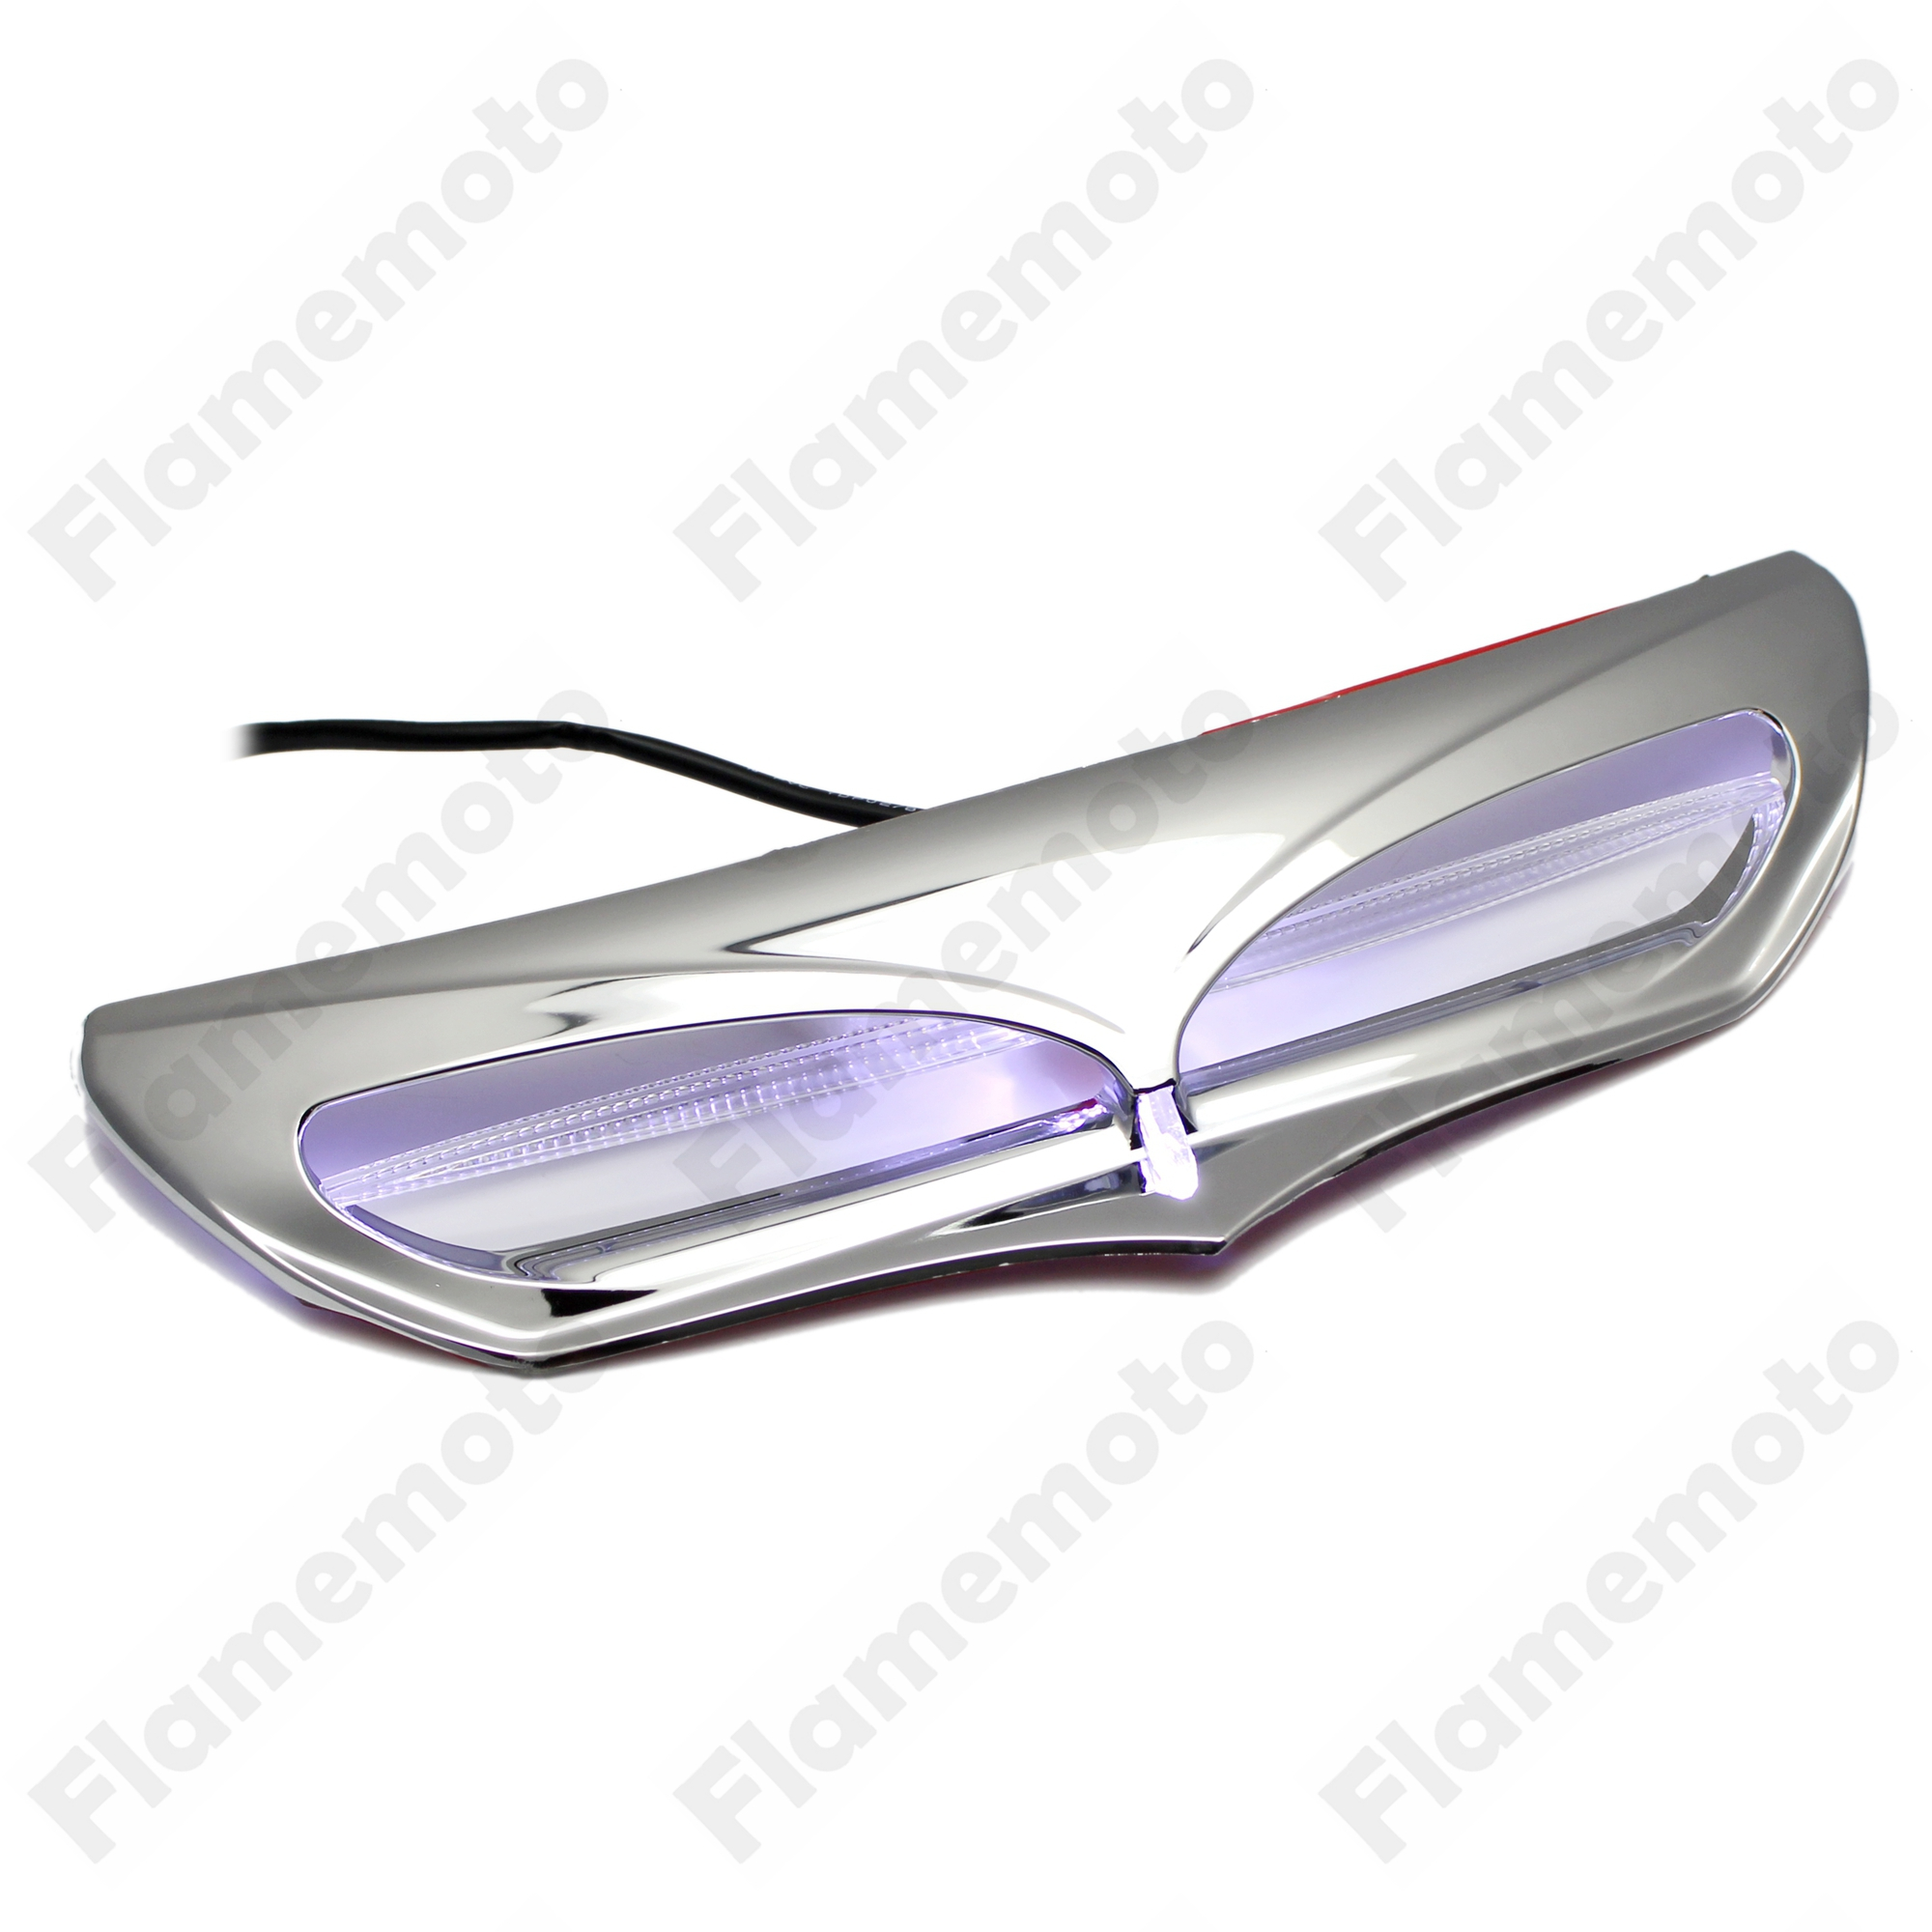 Motorcycle Chrome Batwing Fairing Vent Trim with LED Accent Lights Cover For Harley Touring Road King Street Electra Glide chrome batwing fair windshield windscreen trim case for harley touring 1996 2013